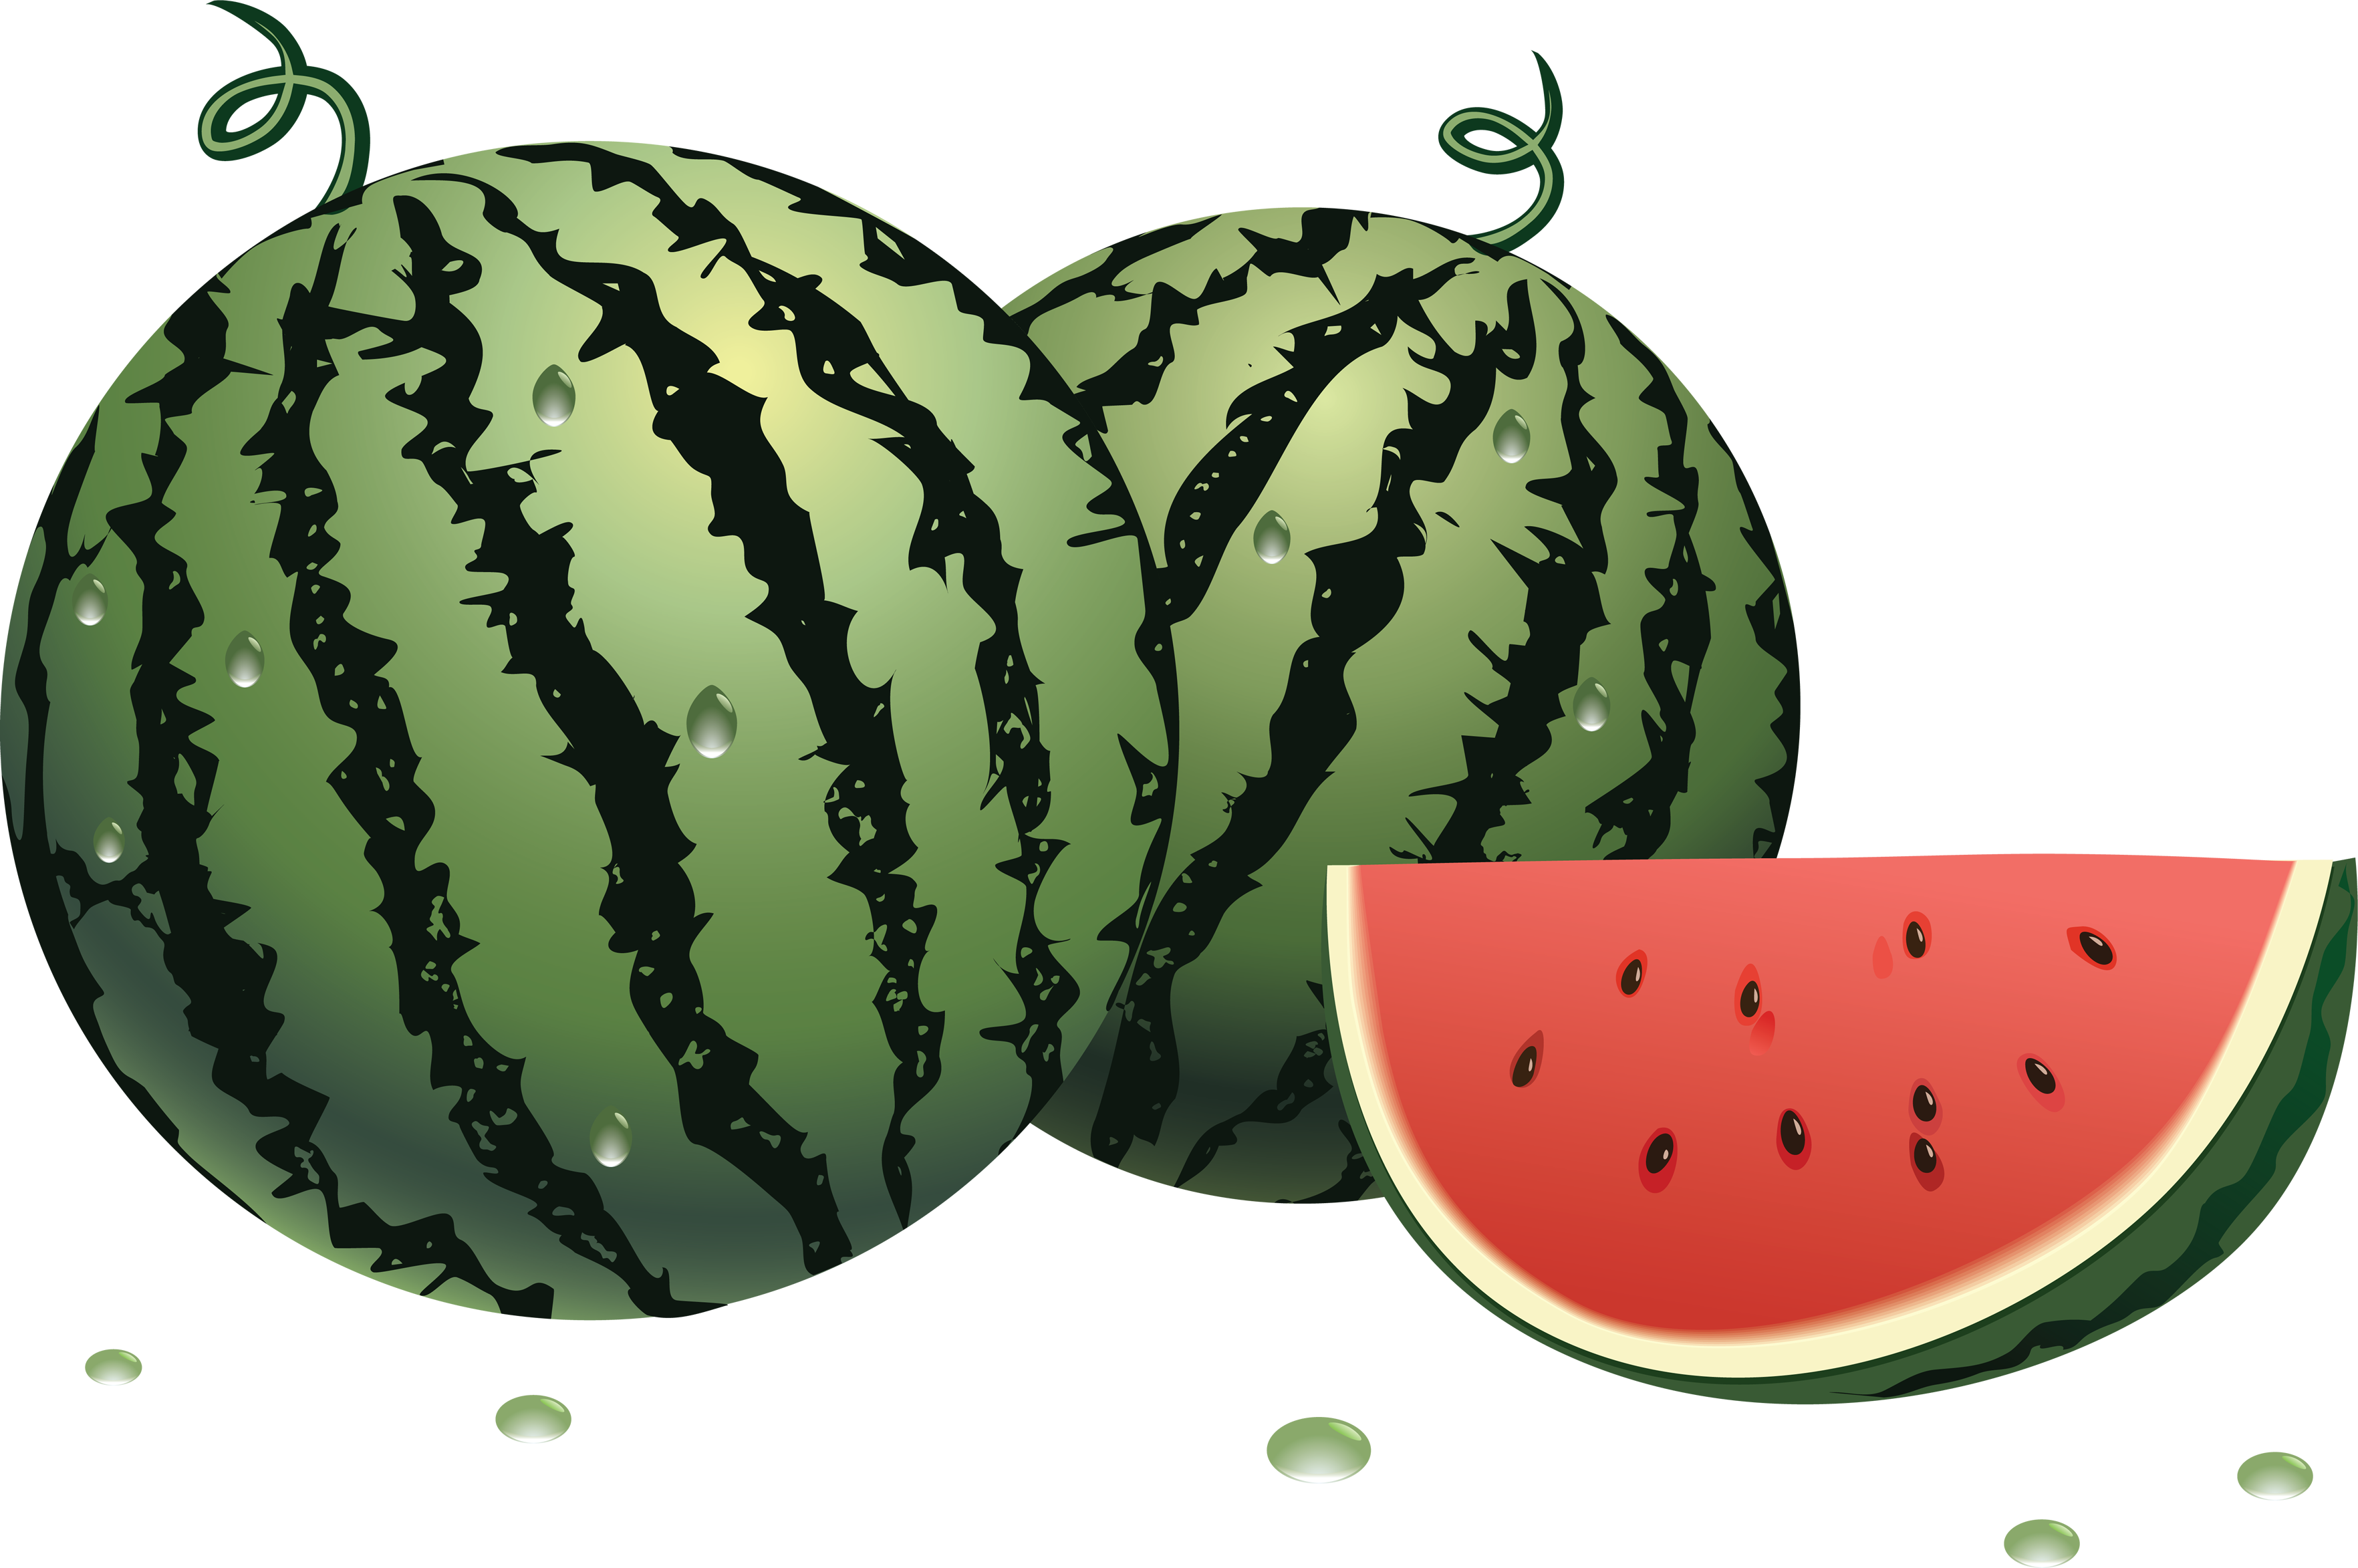 Watermelon clipart juicy watermelon. Png images free download